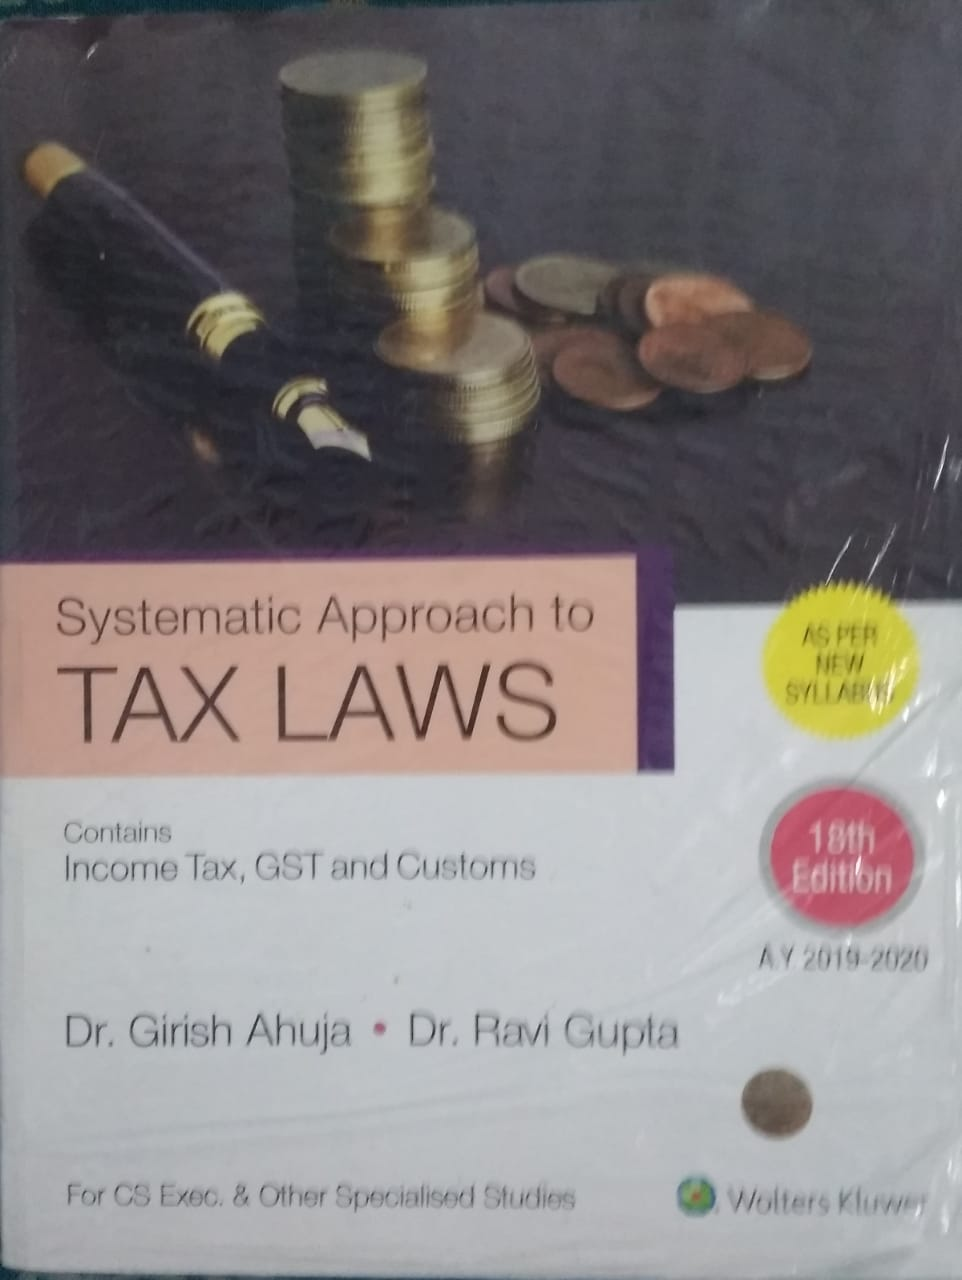 2020 New Tax Laws.Systematic Approach To Tax Laws Contains Income Tax Gst Costoms New Syllabus By Dr Girish Ahuja Dr Ravi Gupta Wolters Kluwer